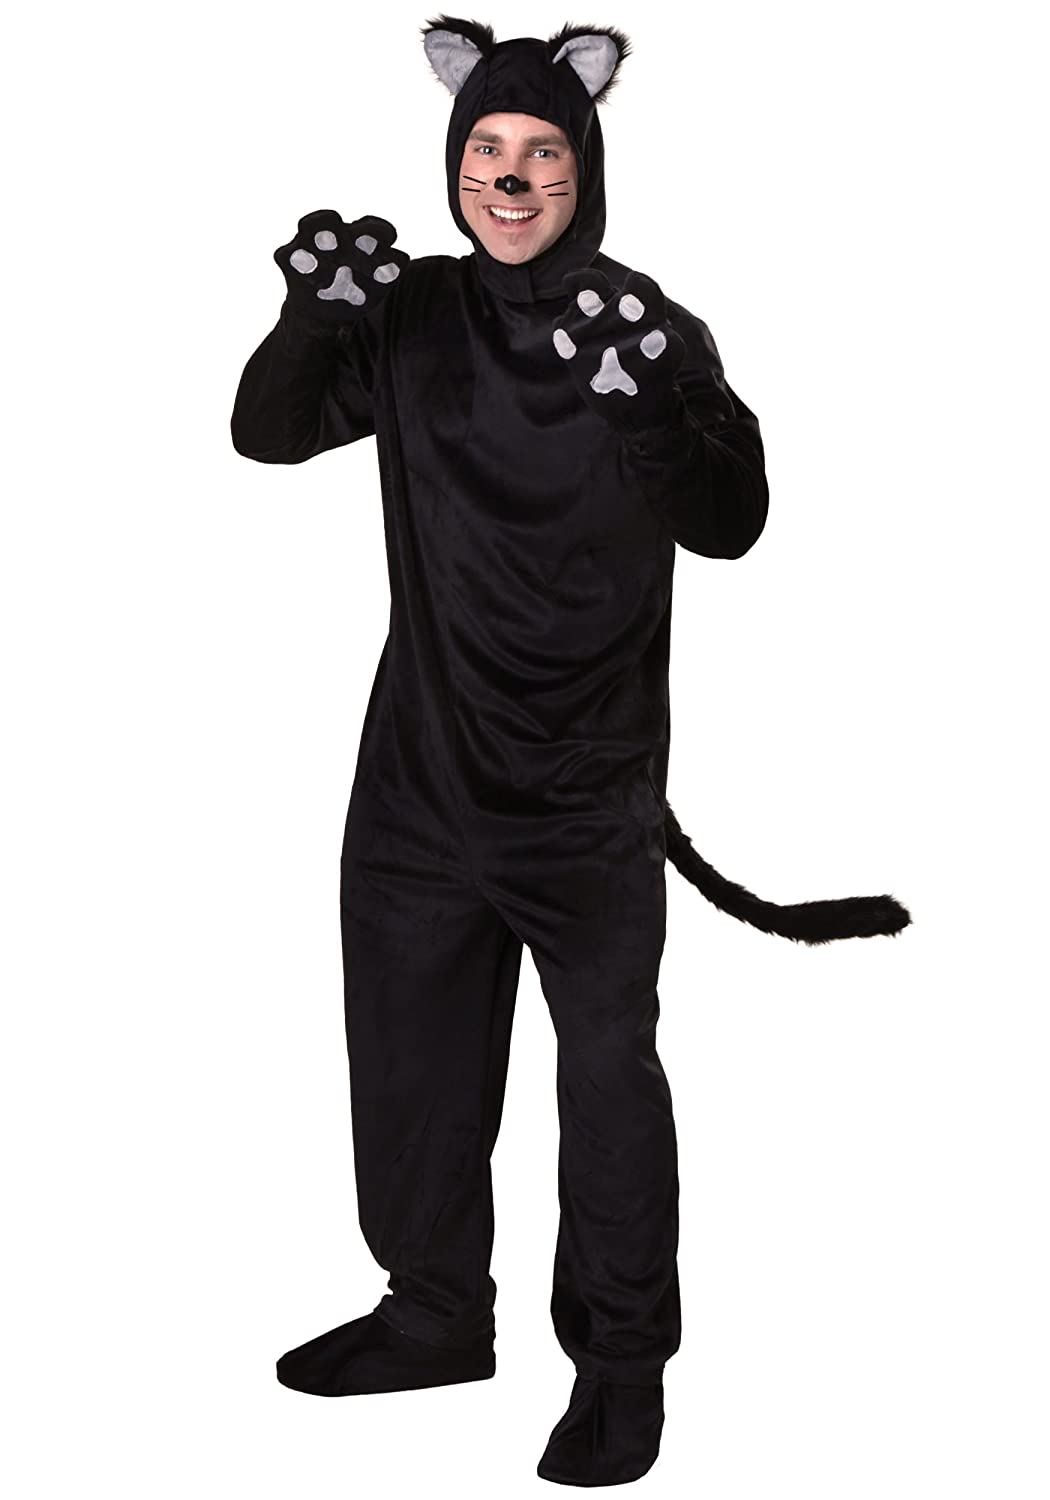 Fun Costumes unisex-adult Plus Size Black Cat Costume